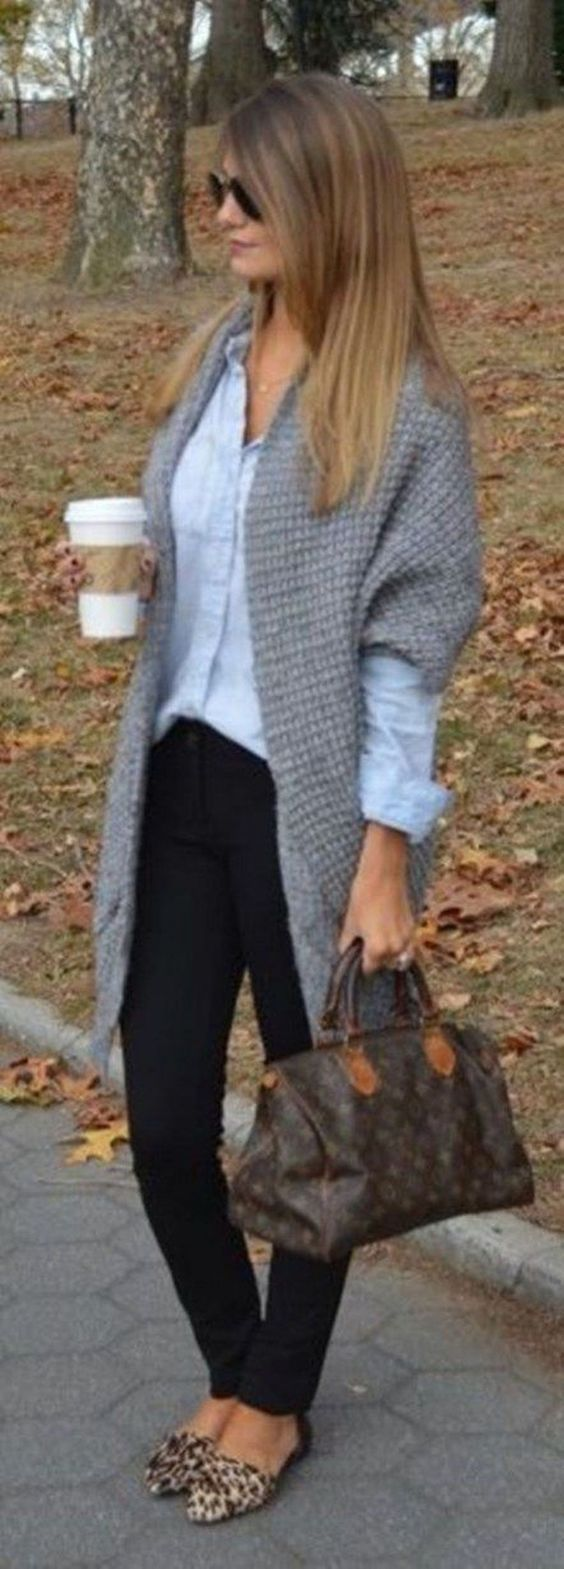 40+ Fall Outfits For Work Ideas #falloutfitsforwork 40+ Fall Outfits For Work Ideas #love #instagood...